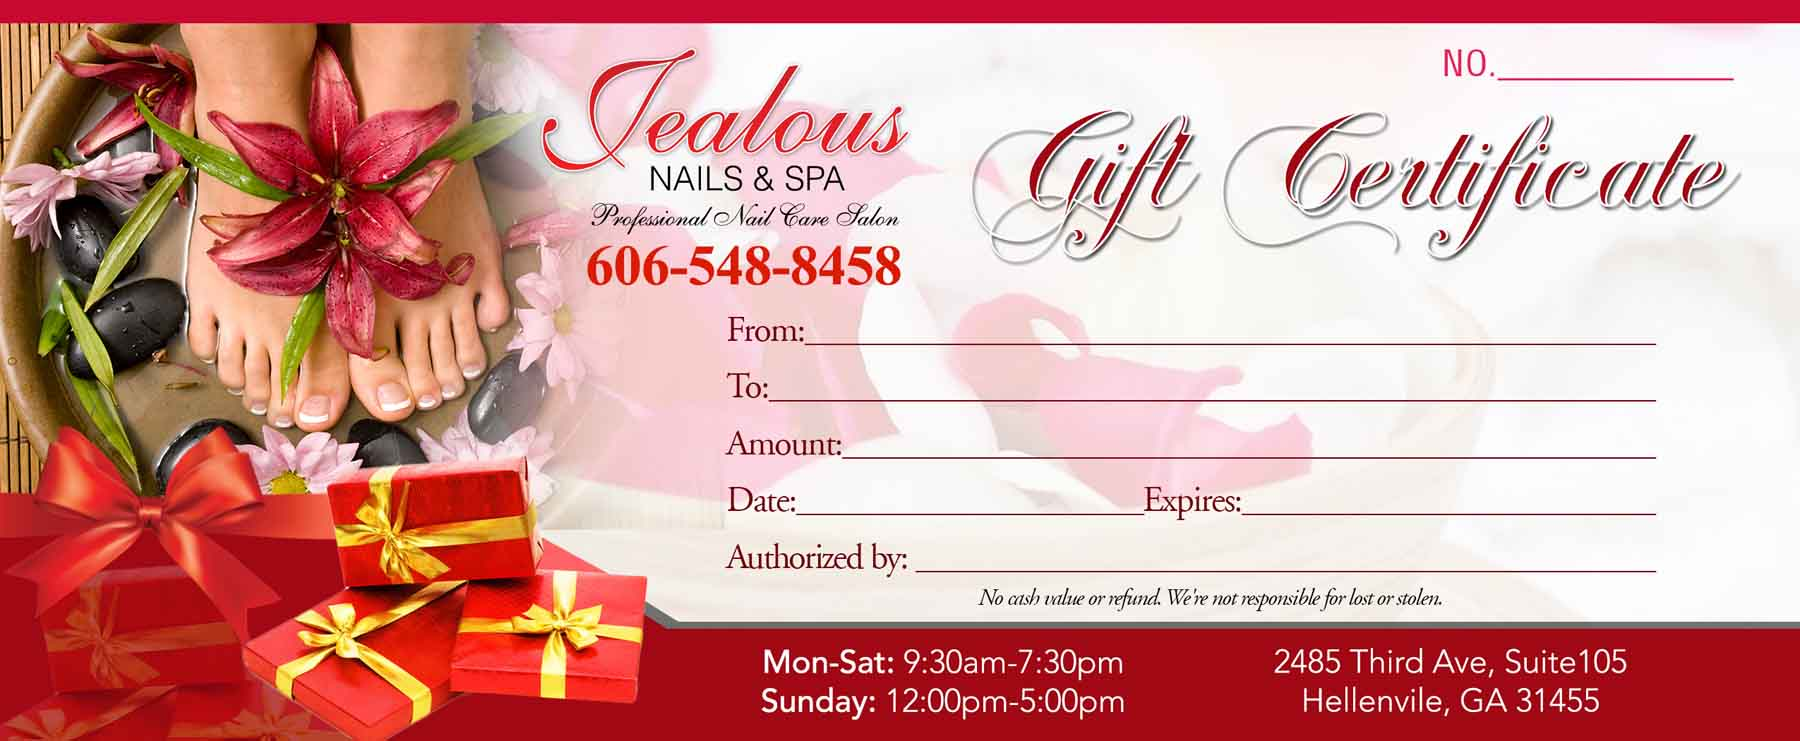 Gift Certificates Templates VN PRINTING - Nail salon gift certificate template